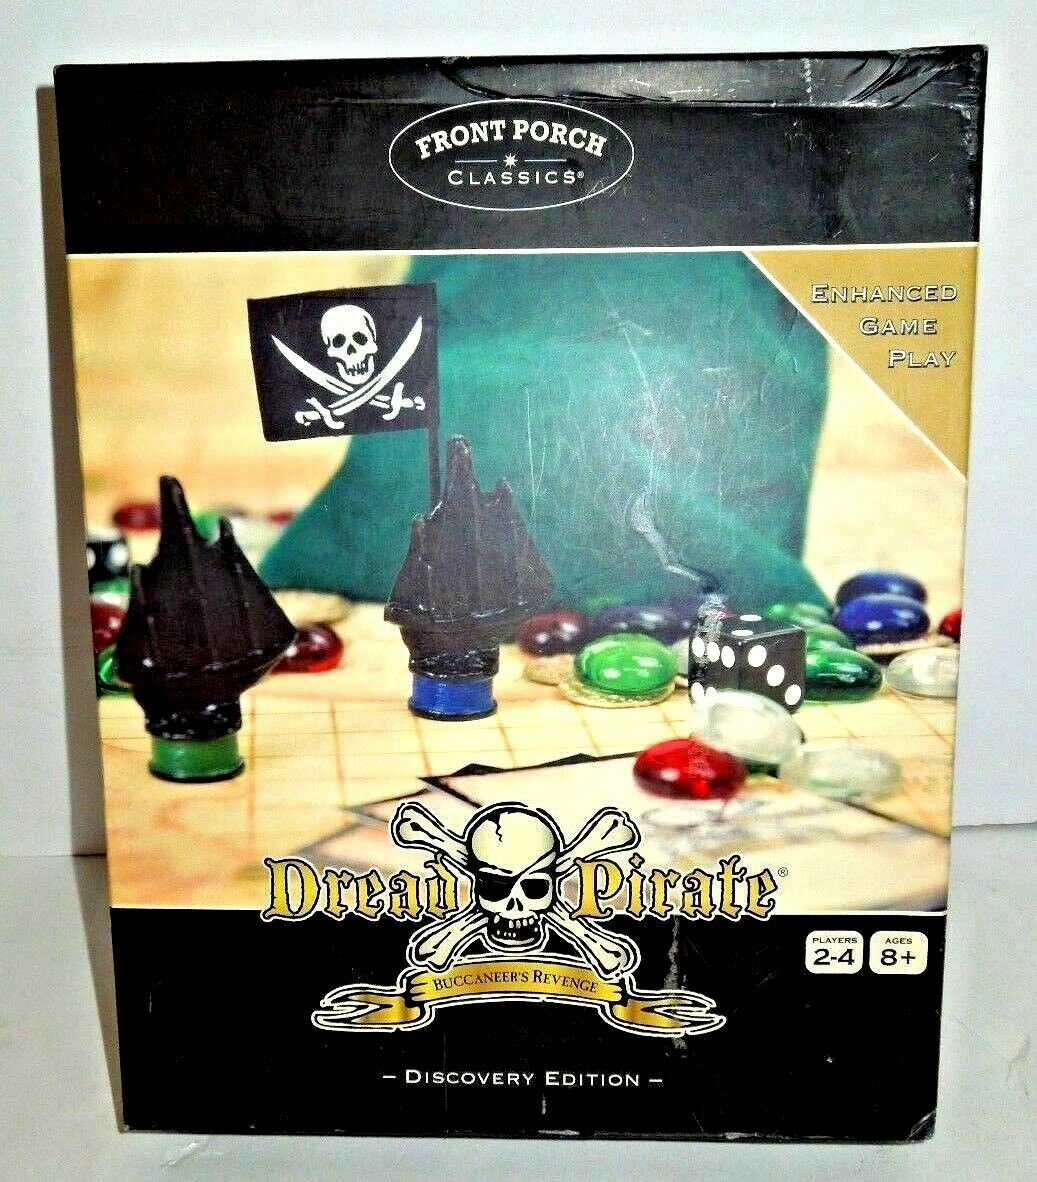 Front Porch Dread Pirate Discovery Edition Buccaneers Revenge Board Game